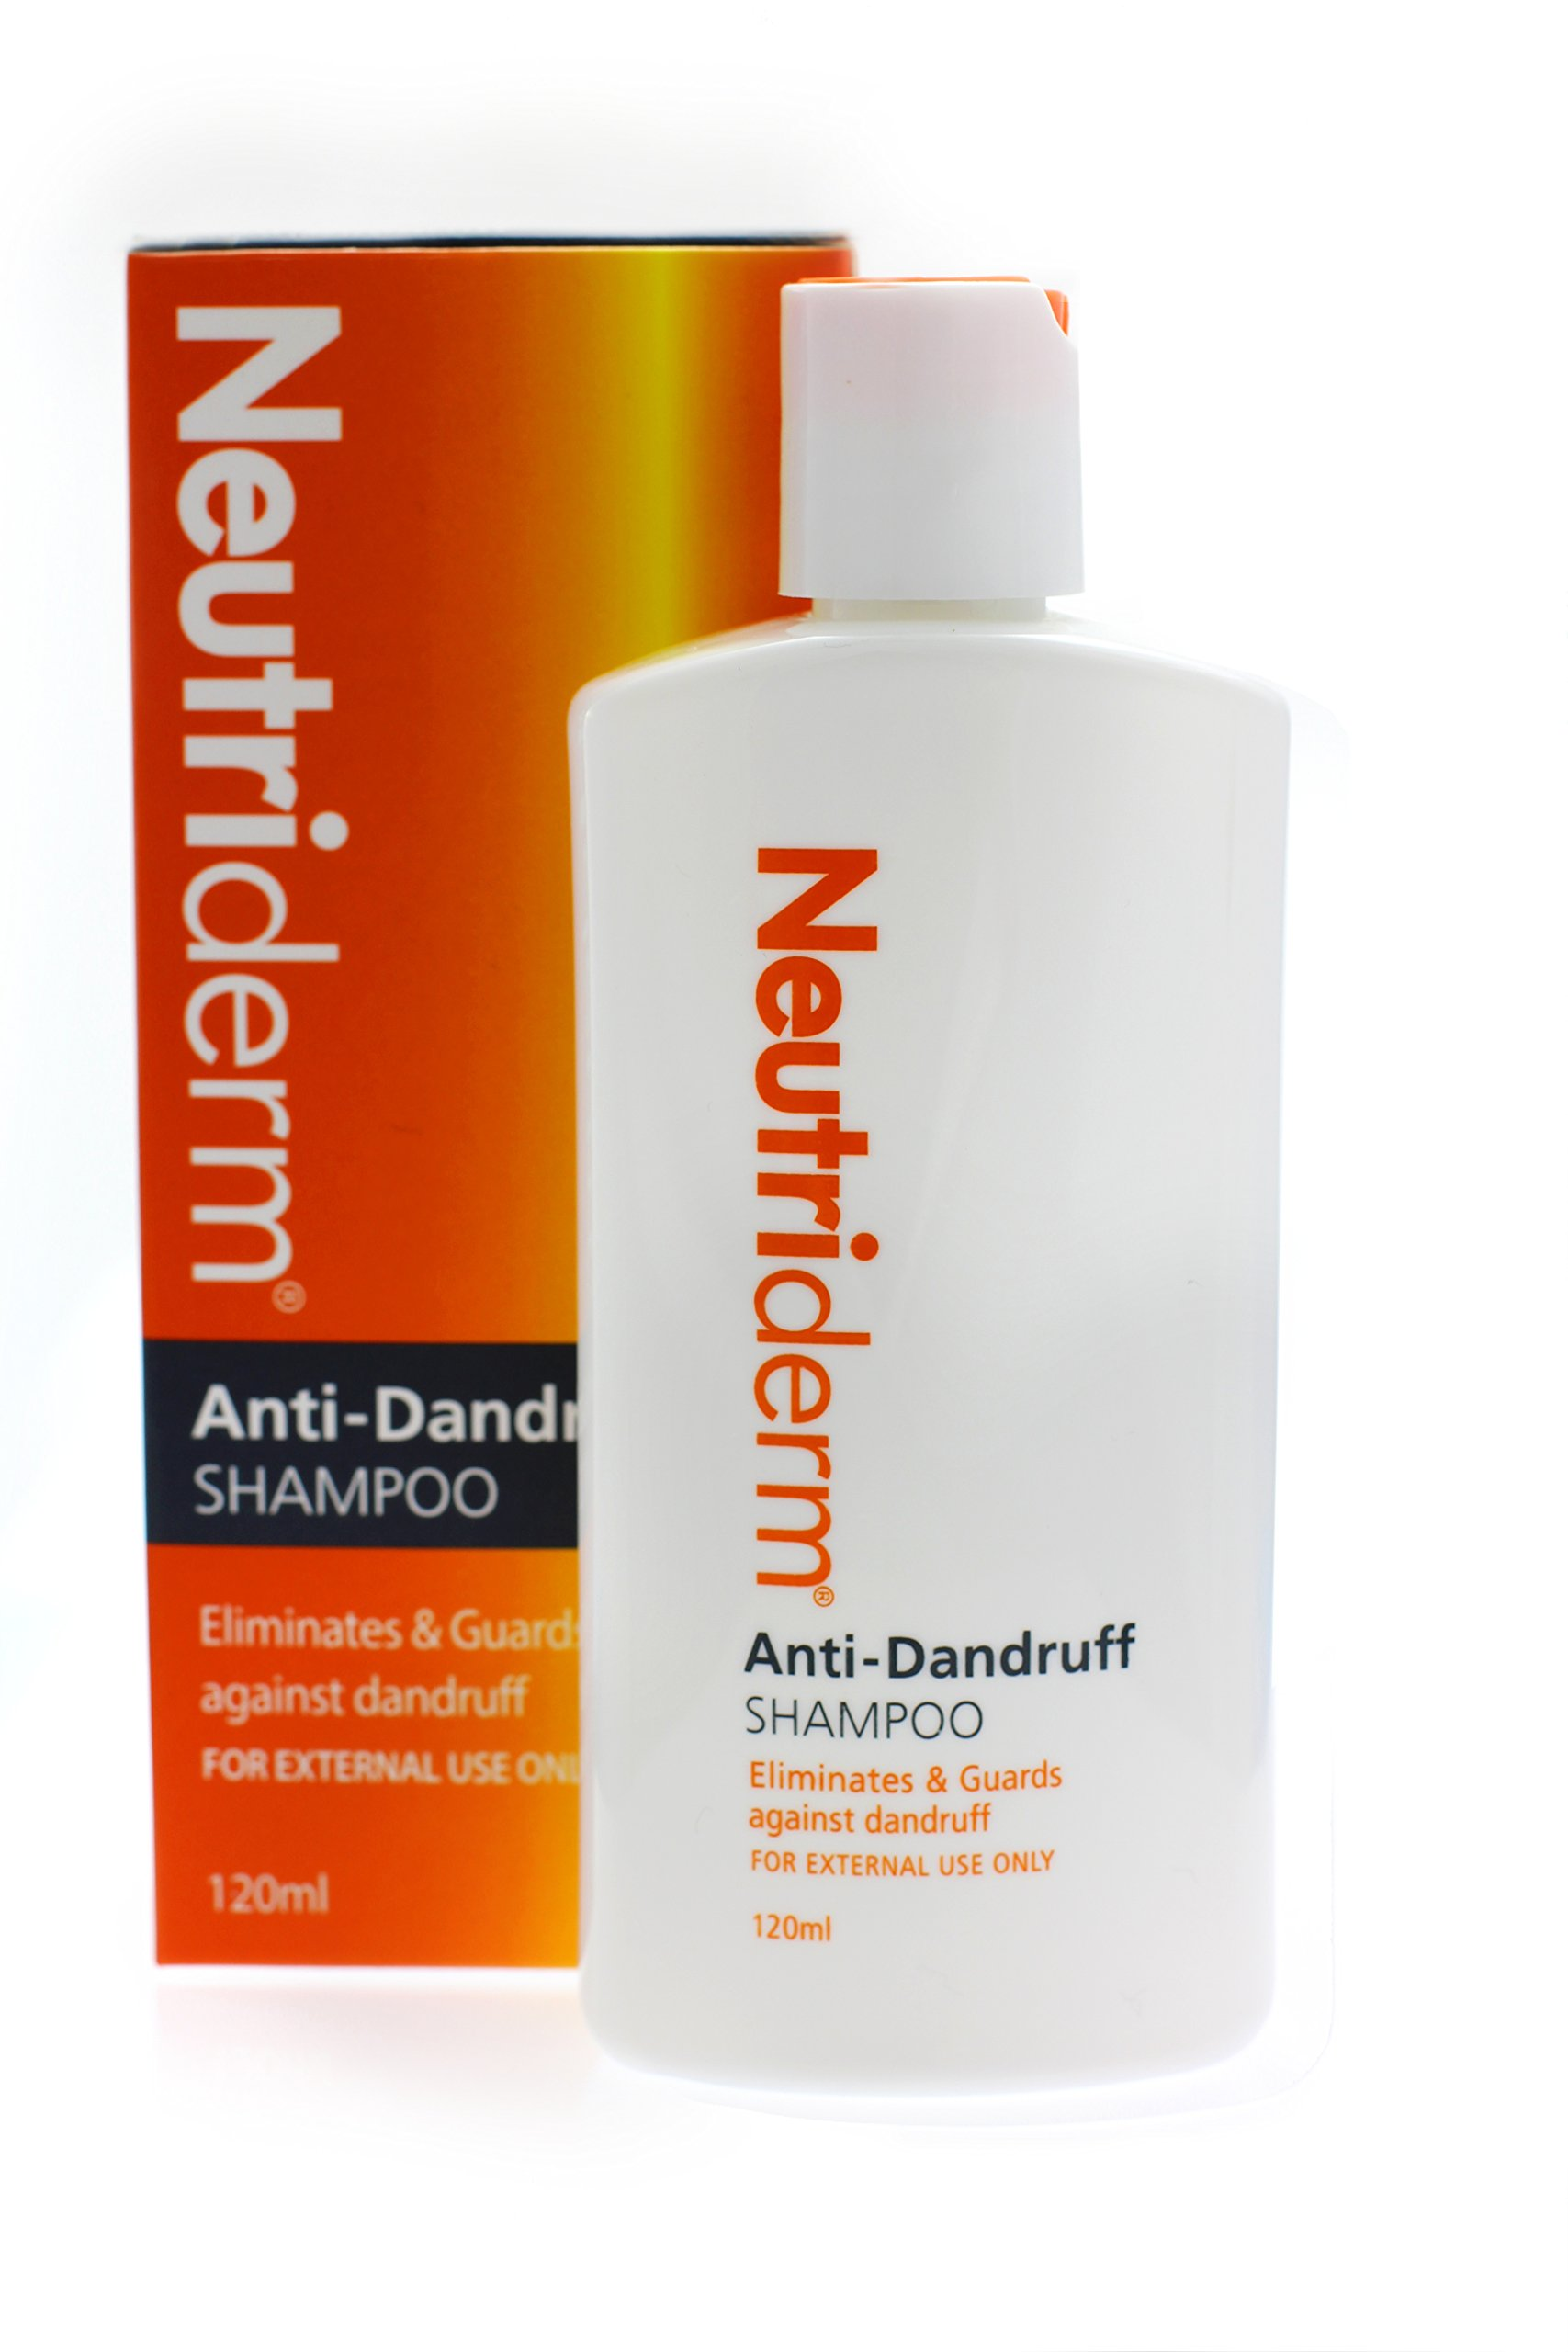 Neutriderm Anti Dandruff Shampoo - Fast-Acting, Long-Lasting Relief, Dandruff Control Treatment for Itching, Flaking and Redness, 120ml